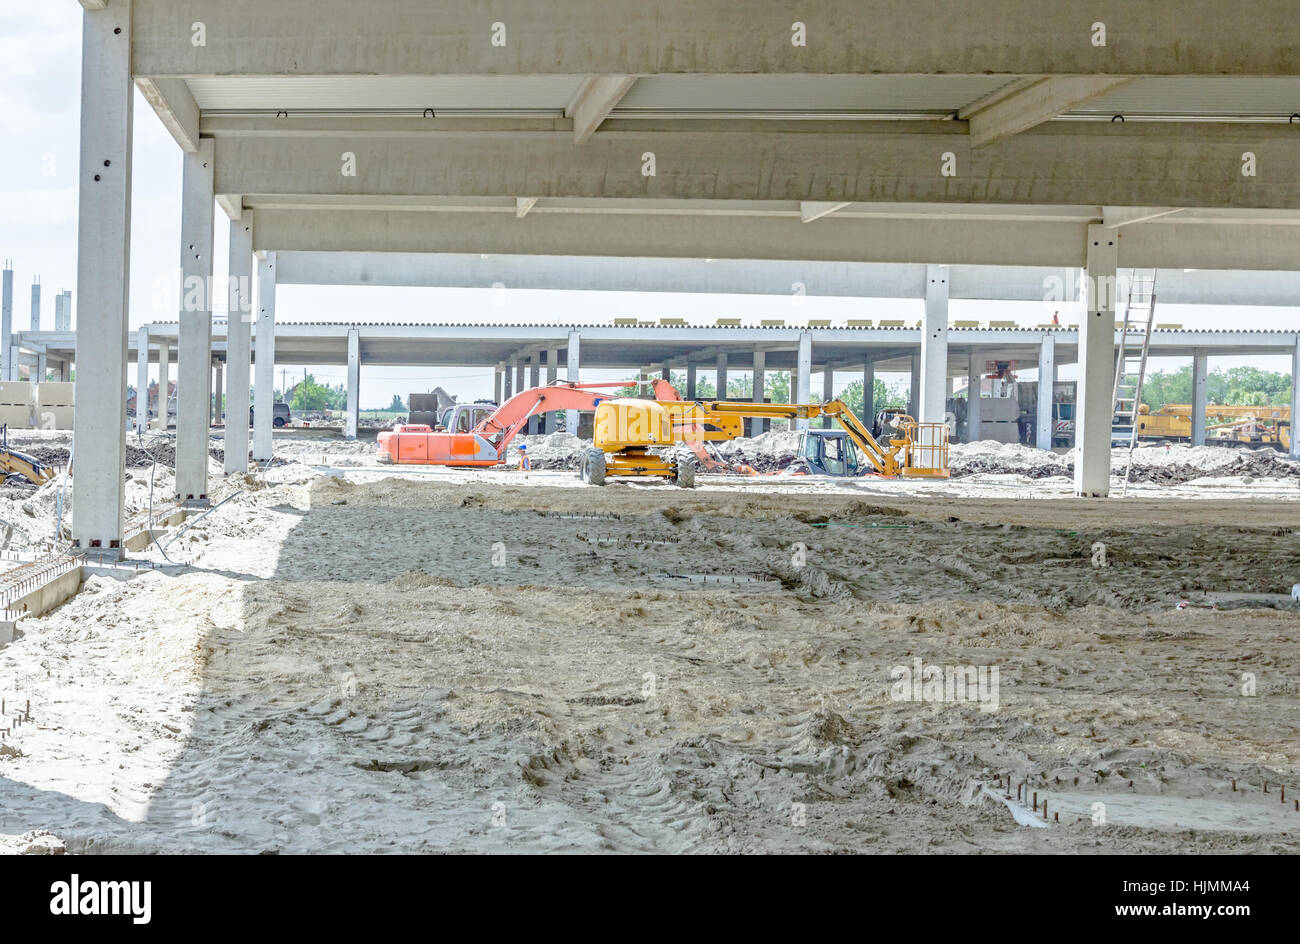 View on construction site with machinery, people at work. Landscape transform into large urban area, concrete hall. - Stock Image